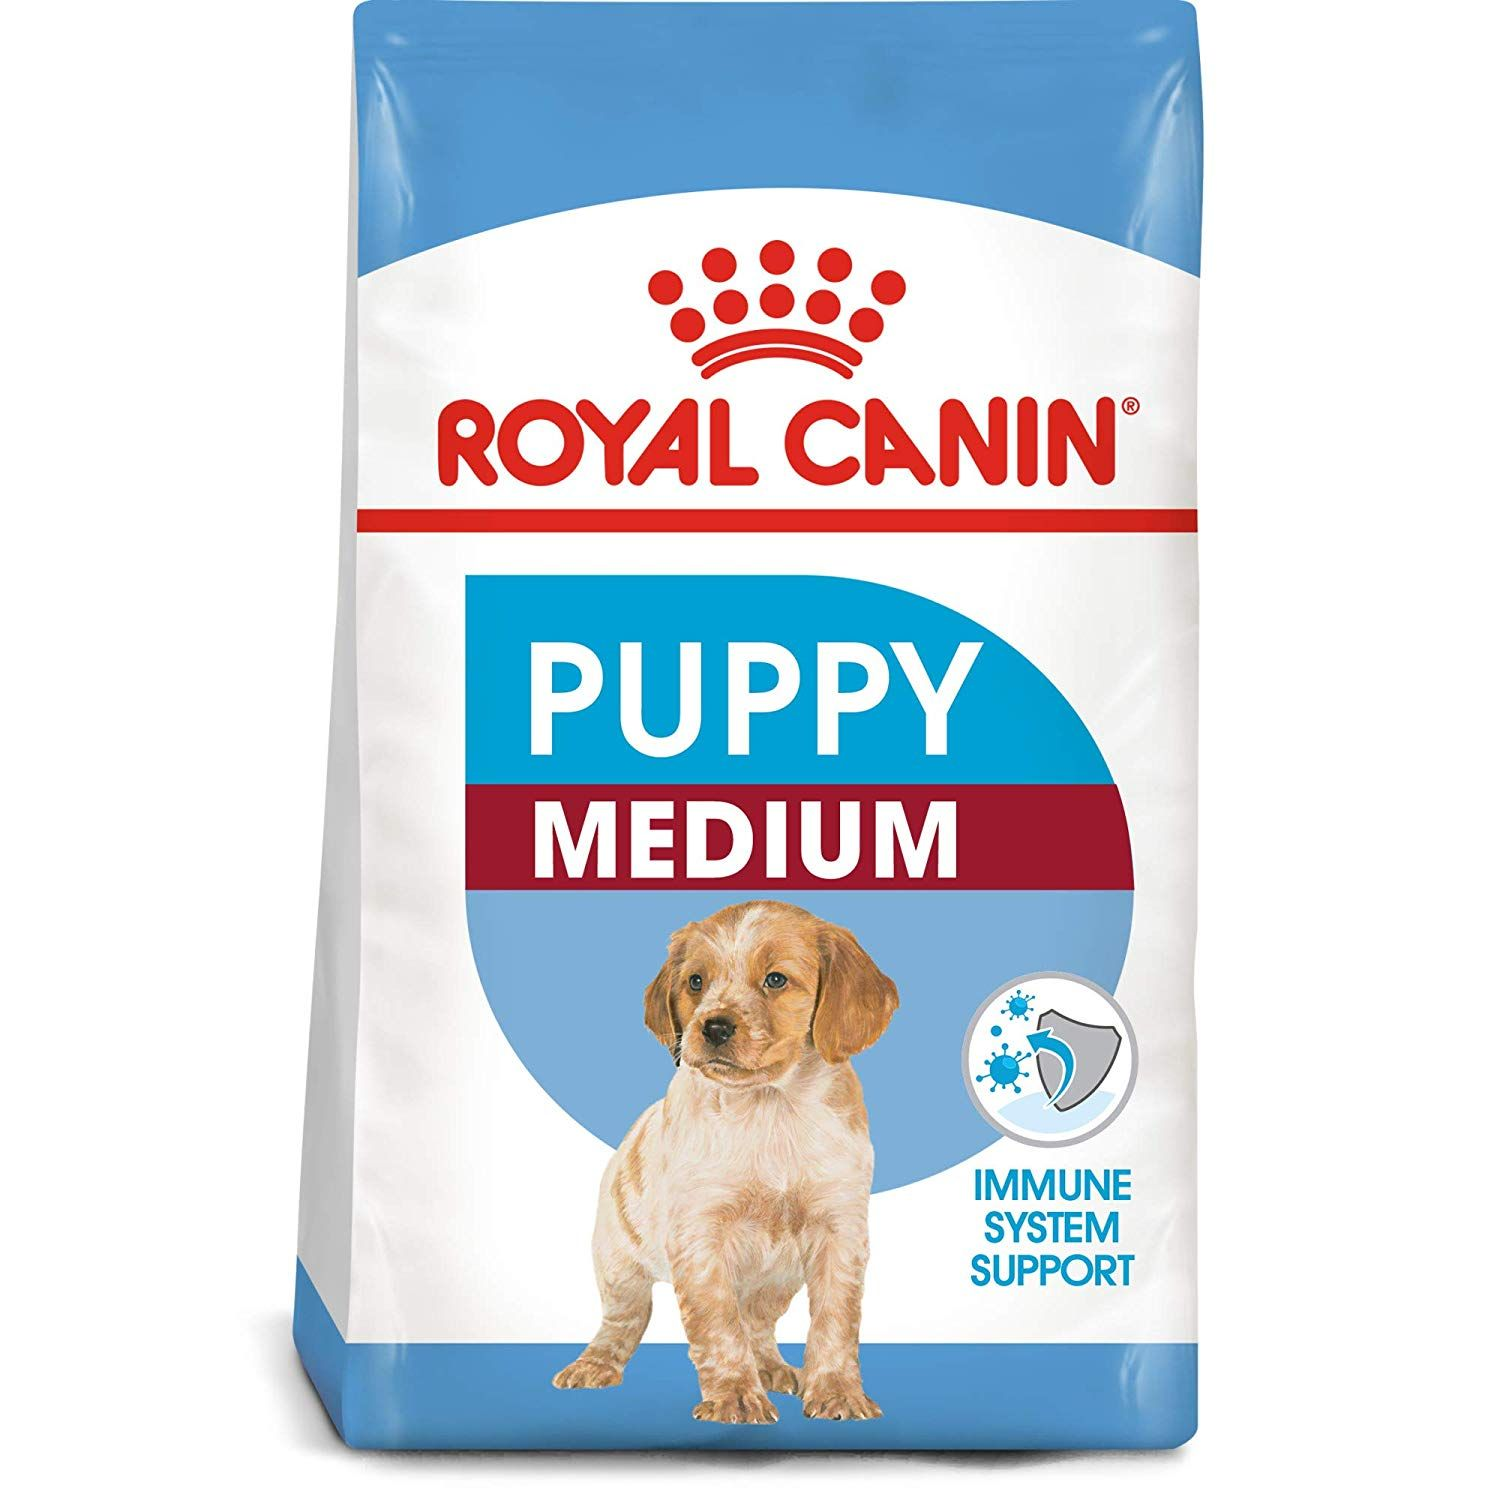 Royal Canin Puppy Dry Dog Food Medium Sincerely Hope That You